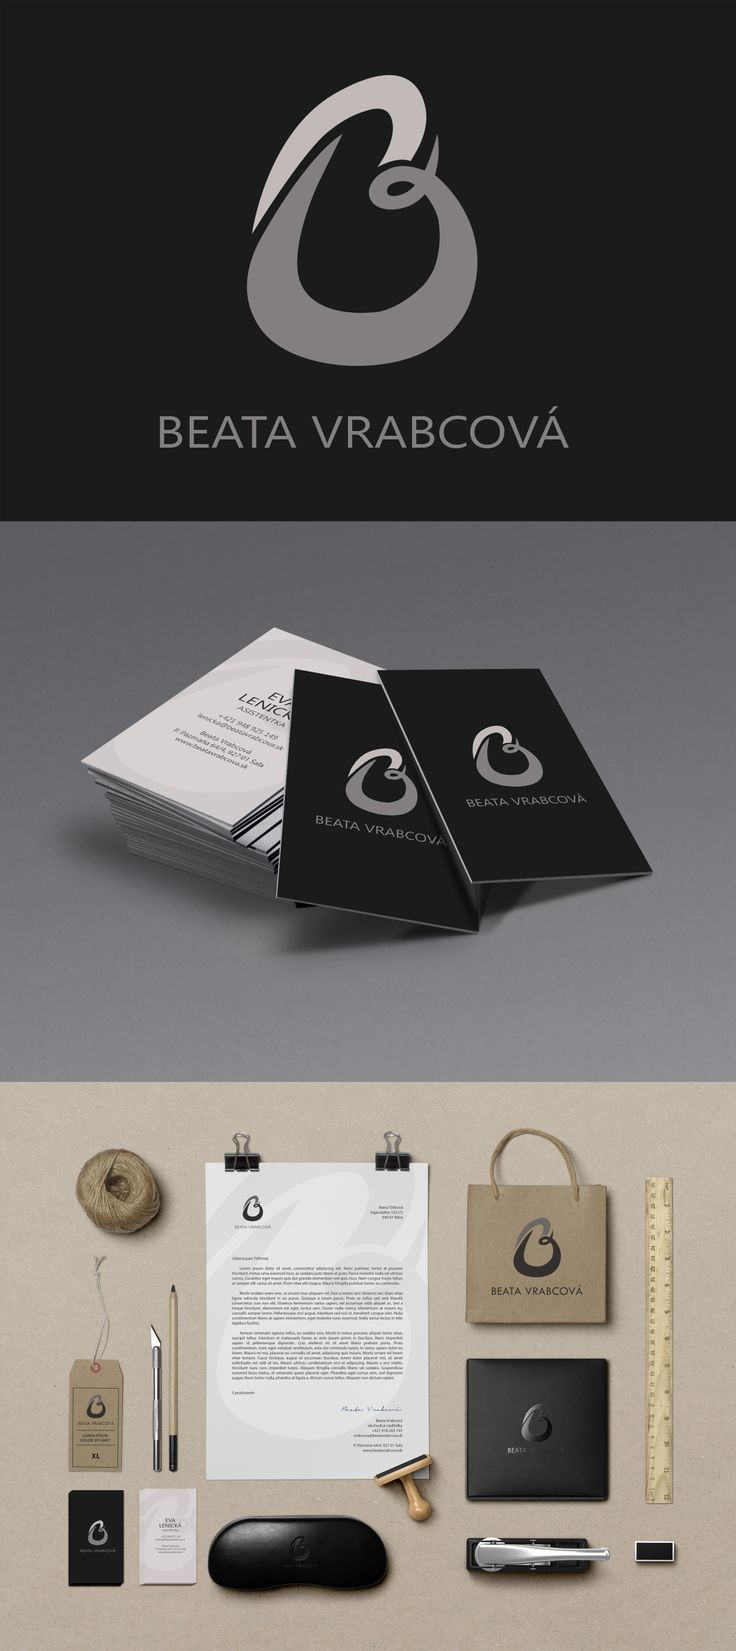 Personal brand identity for a custom designer and tailor Beata Vrabcová. More about the project on https://www.behance.net/gallery/17106429/Beata-Vrabcova